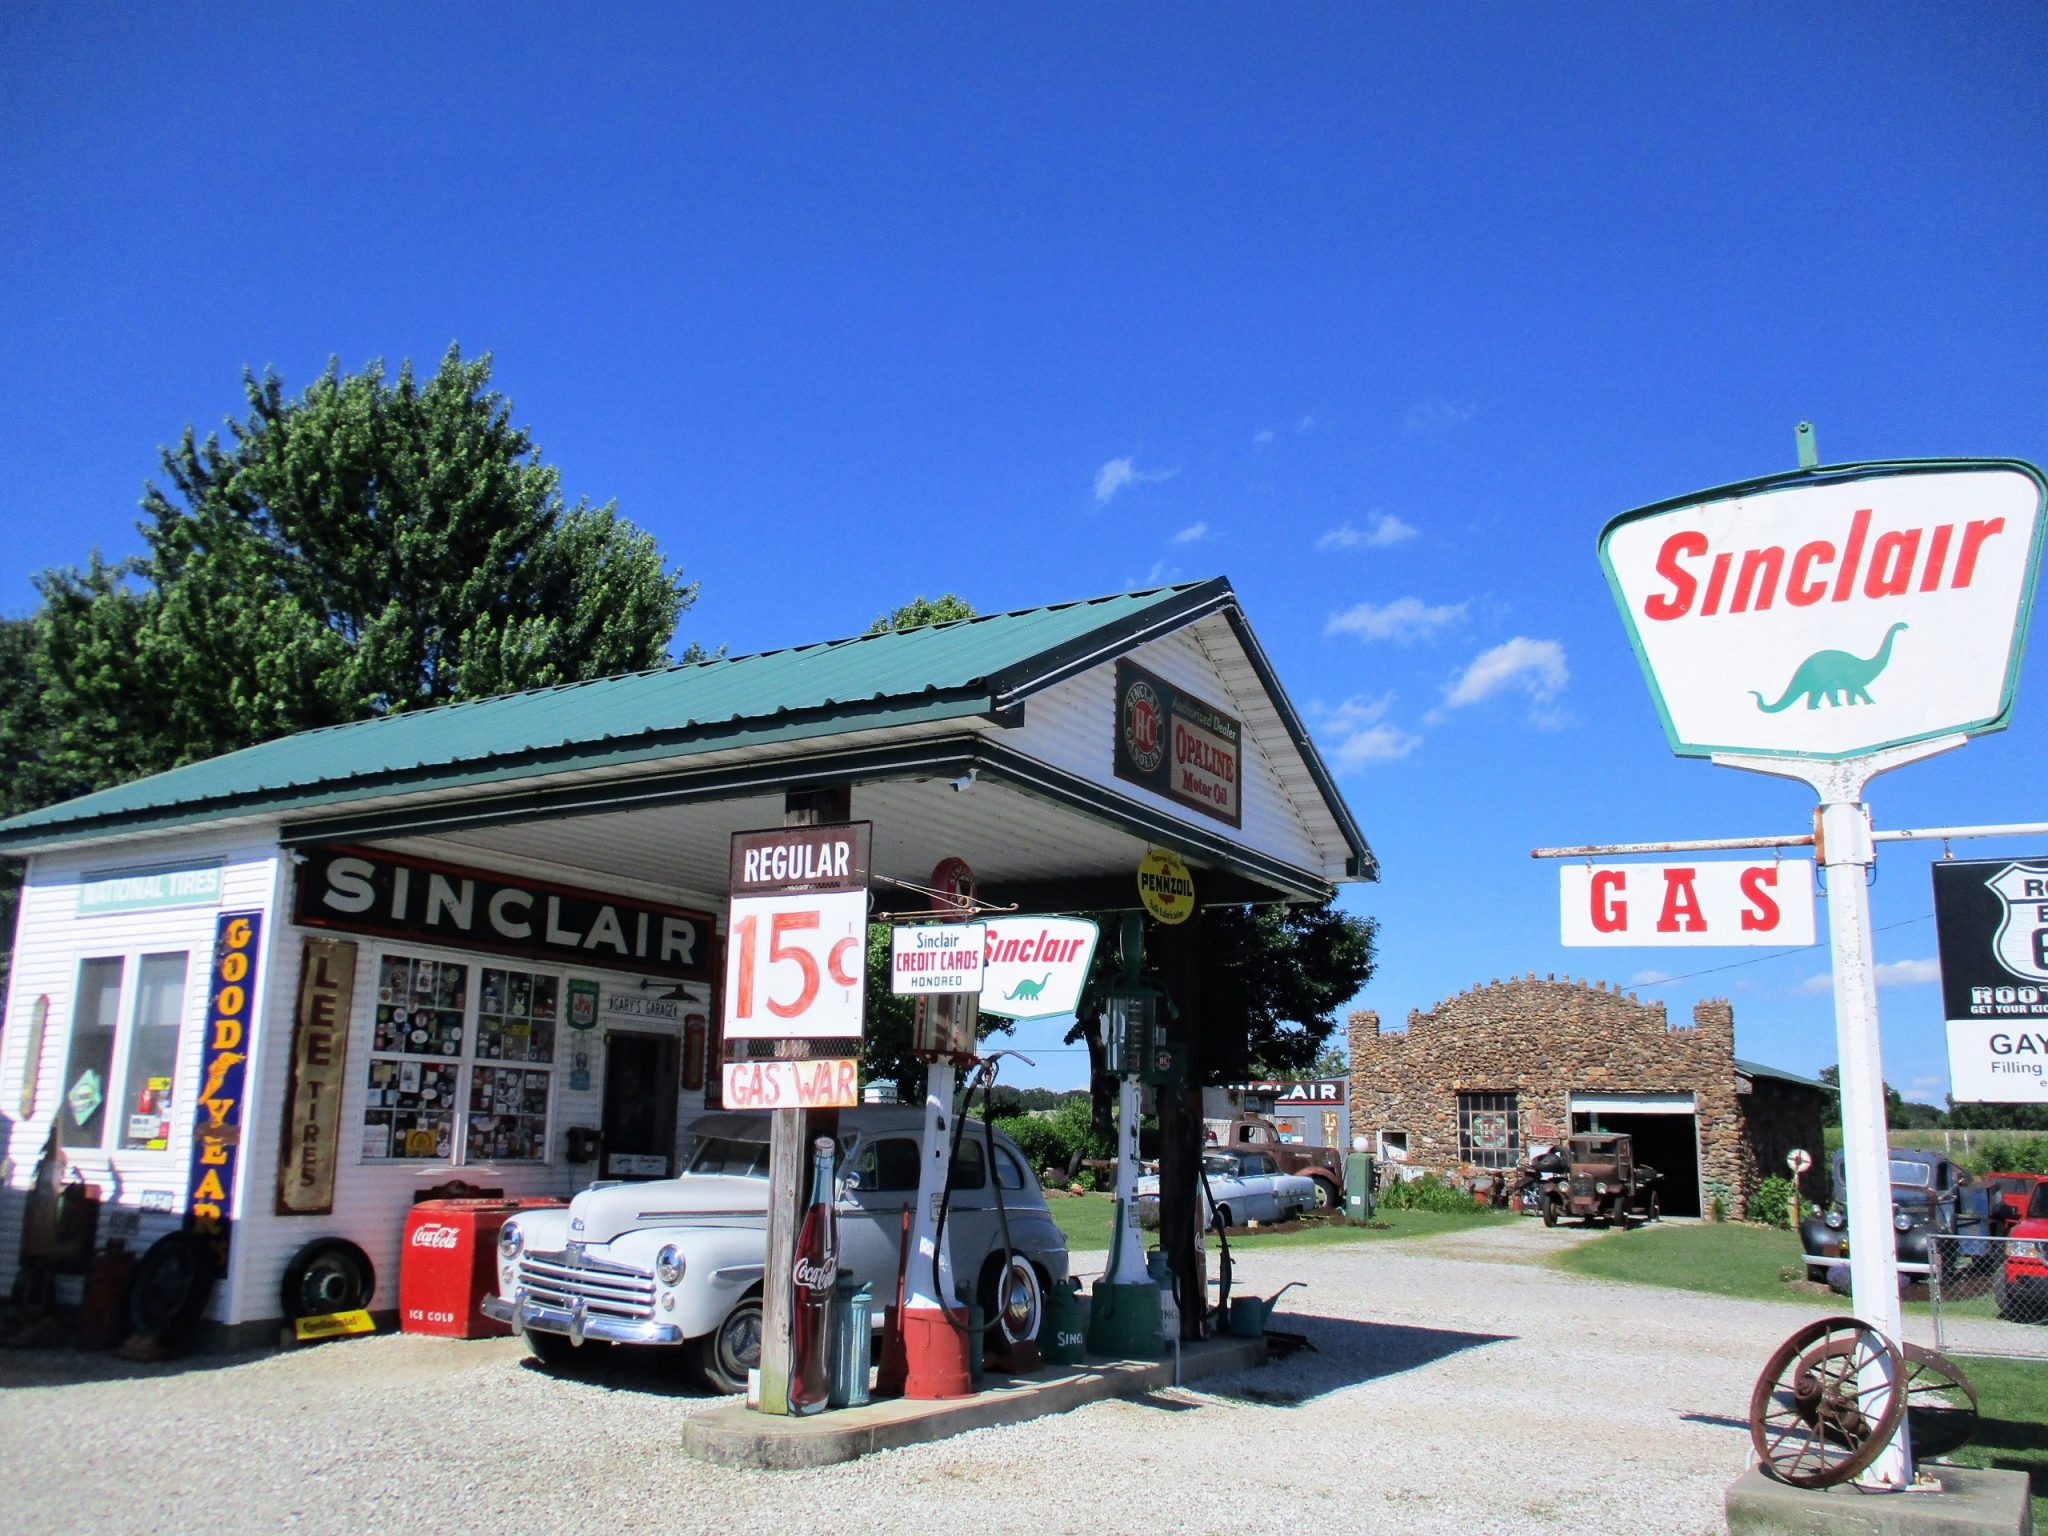 An old-fashioned gas station on US Hwy 66.